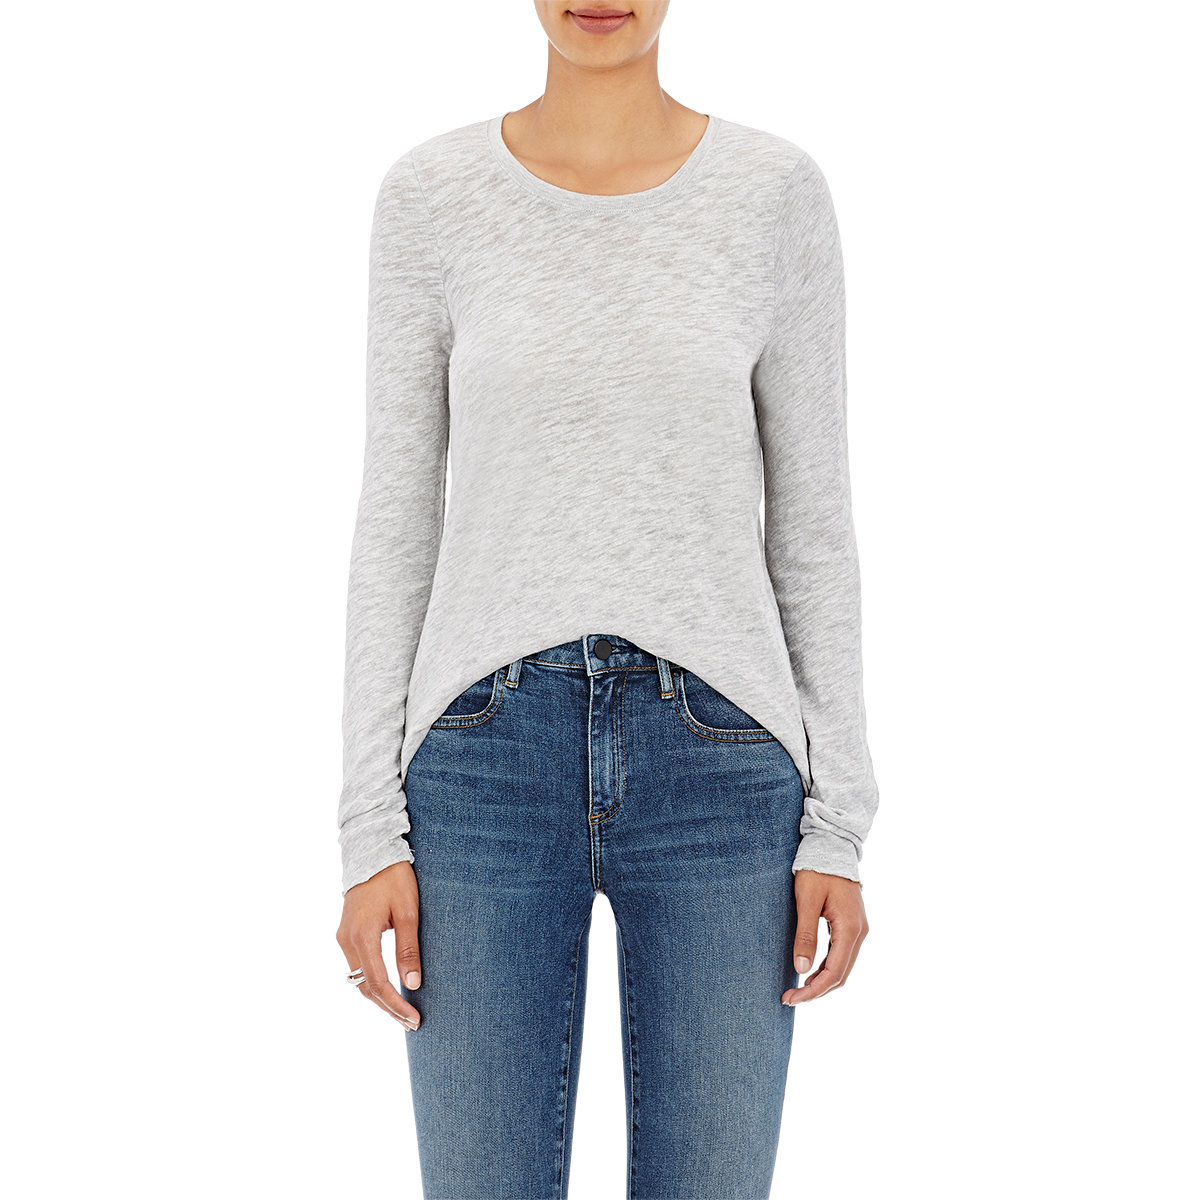 Atm distressed cotton blend long sleeve t in gray lyst for Atm t shirt sale